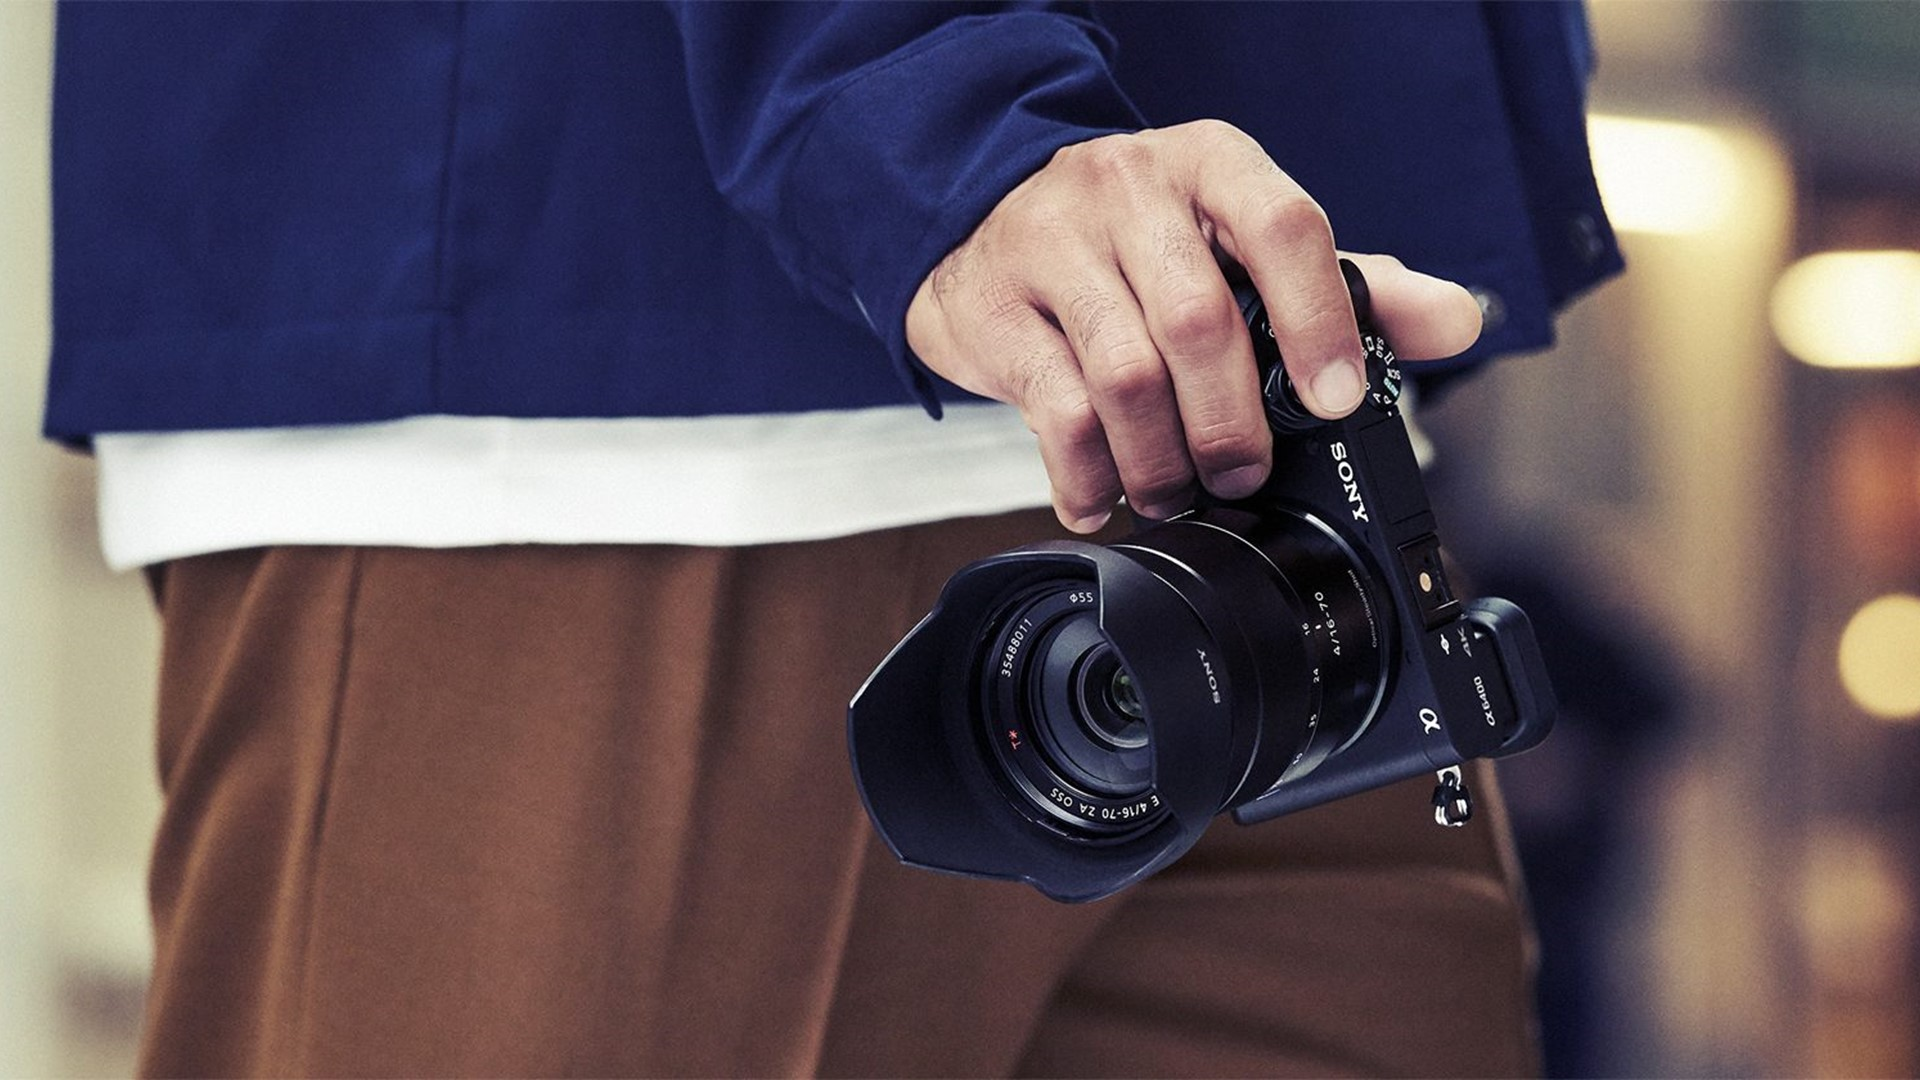 Sony α6400 mirrorless camera with the world's fastest autofocus launched in India